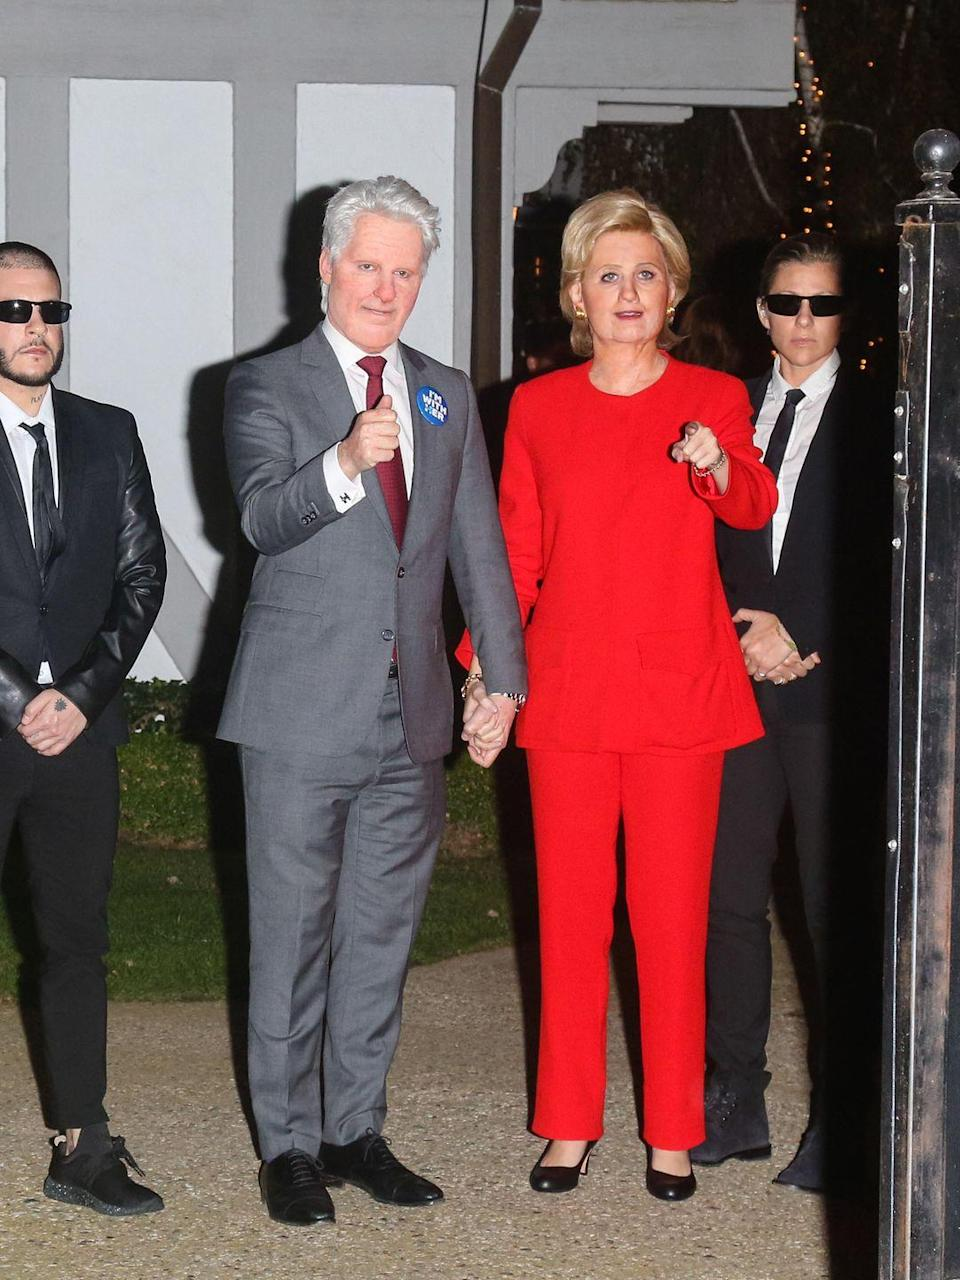 <p>Just another example of how celebrities are over-the-top on Halloween. <del>The Clinton's</del> Orlando Bloom and Katy Perry left a Halloween party in 2016 with a full secret service detail. </p>